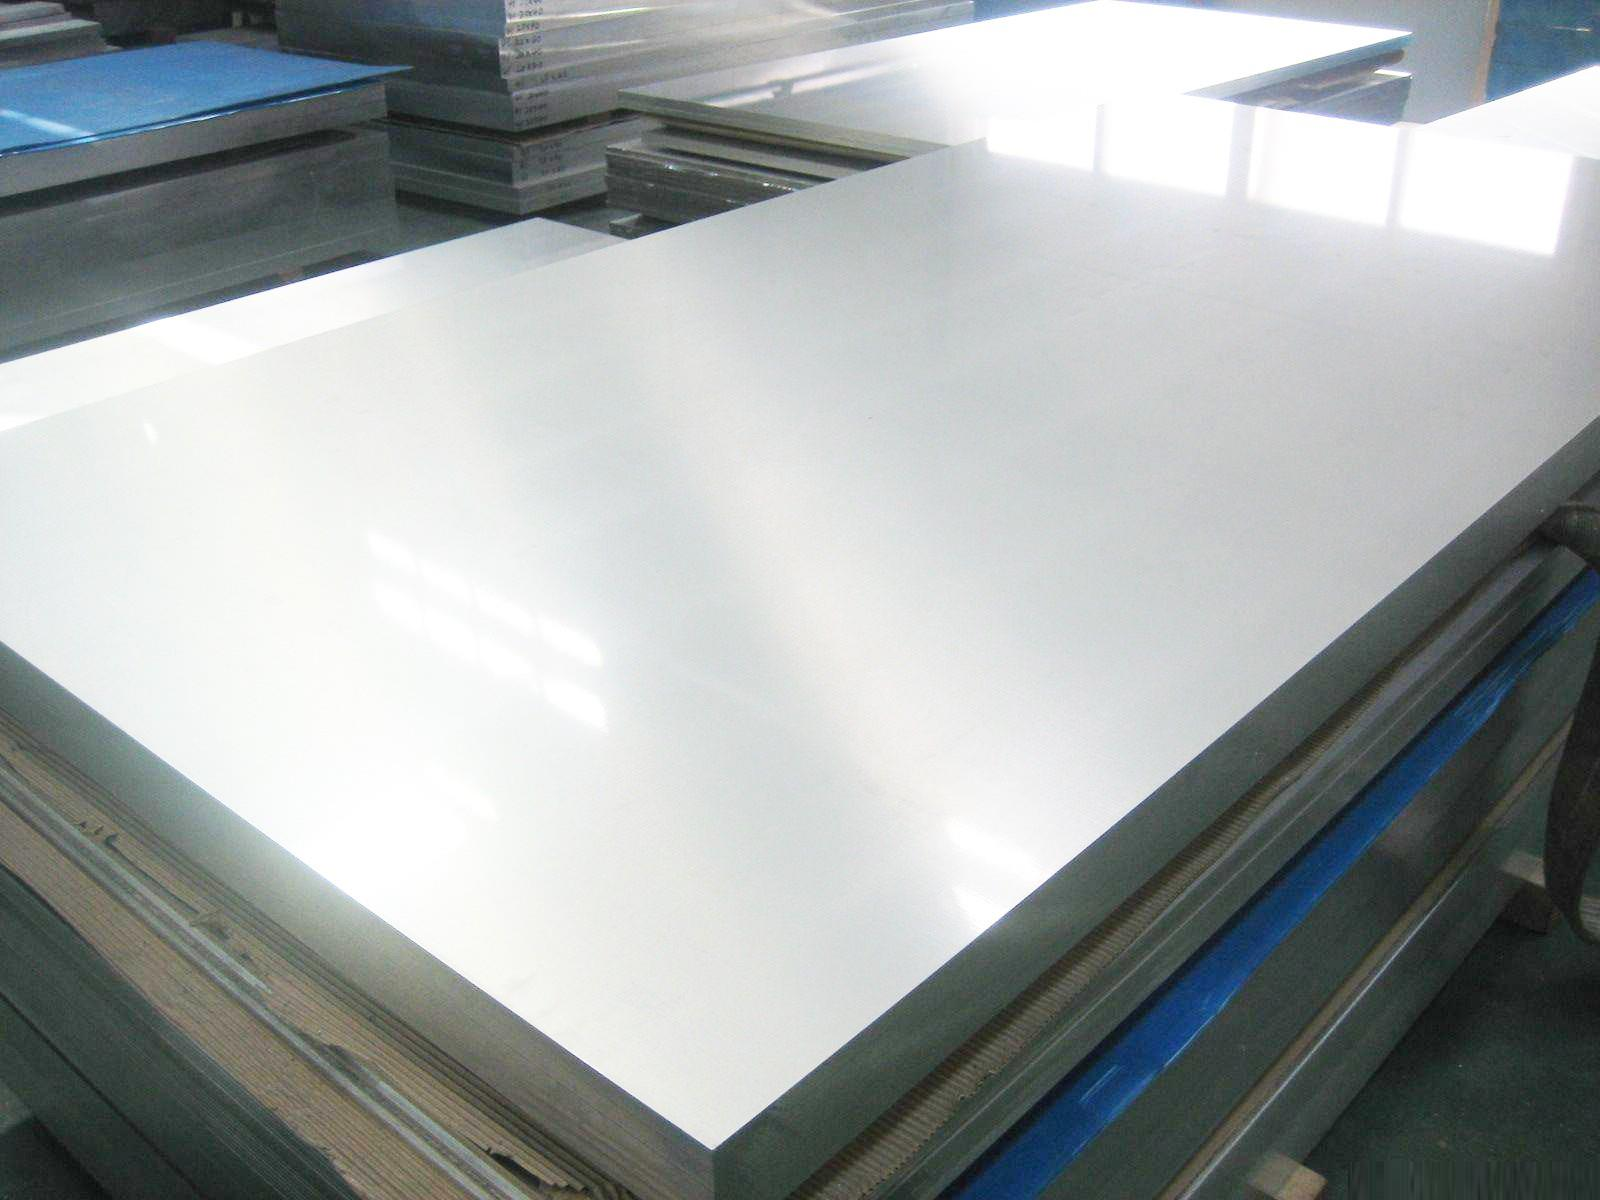 1/8 thick type 304 stainless steel diamond plate